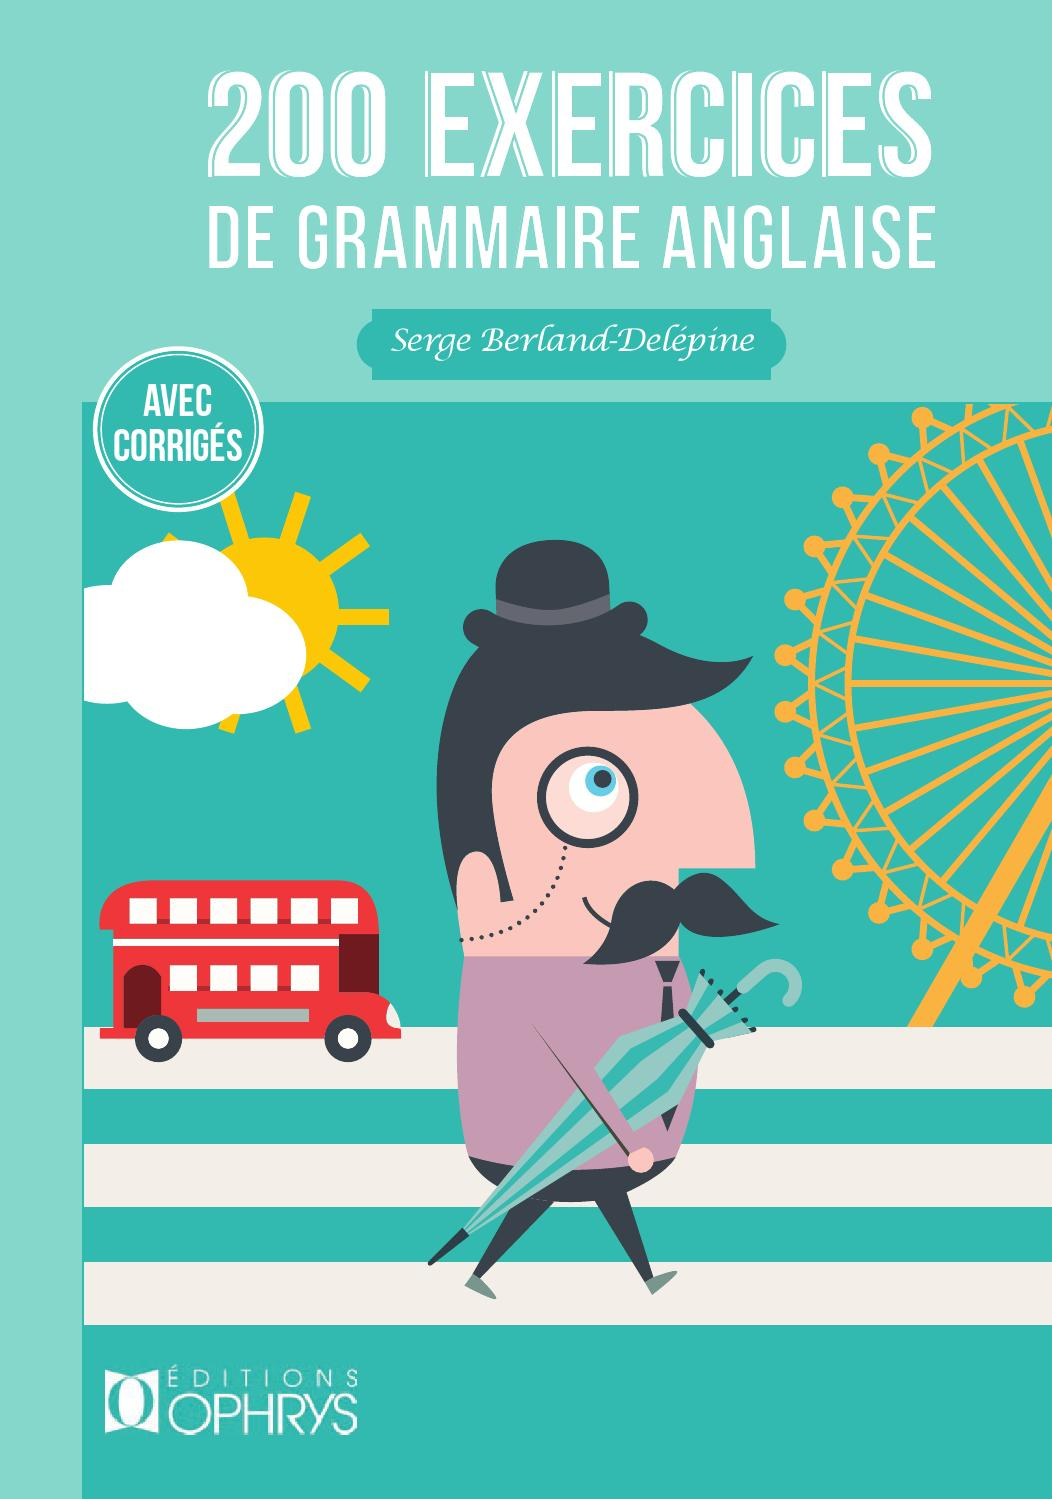 200 exercices de grammaire anglaise by TO Groupe - Issuu